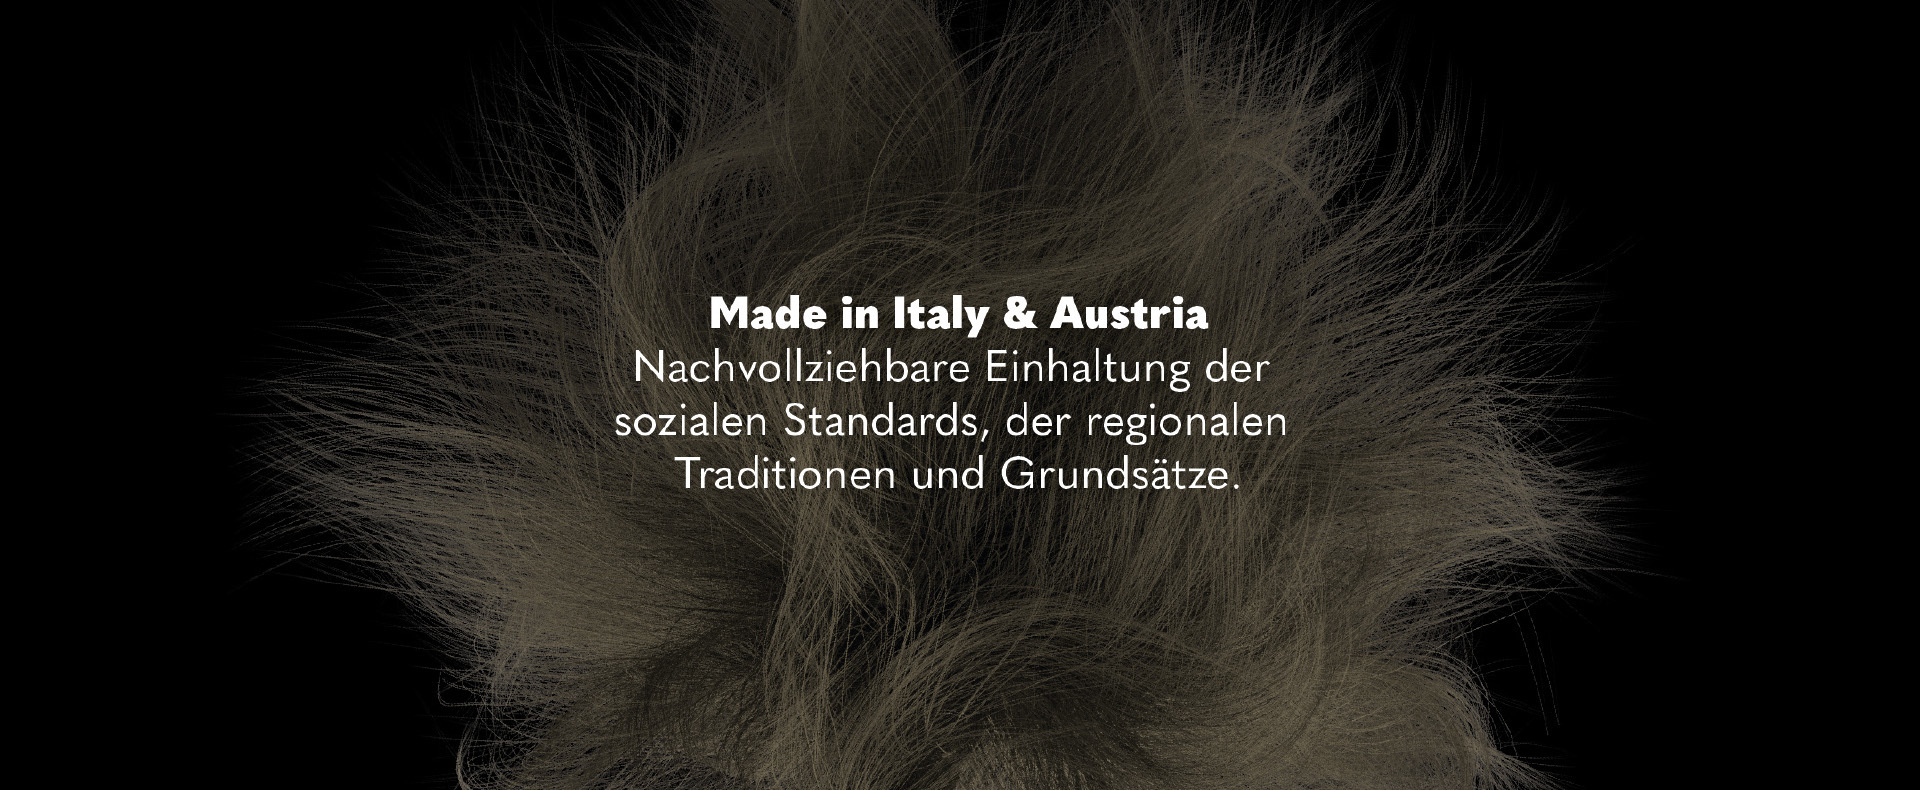 Made in Italy & Austria (© Great Lengths)